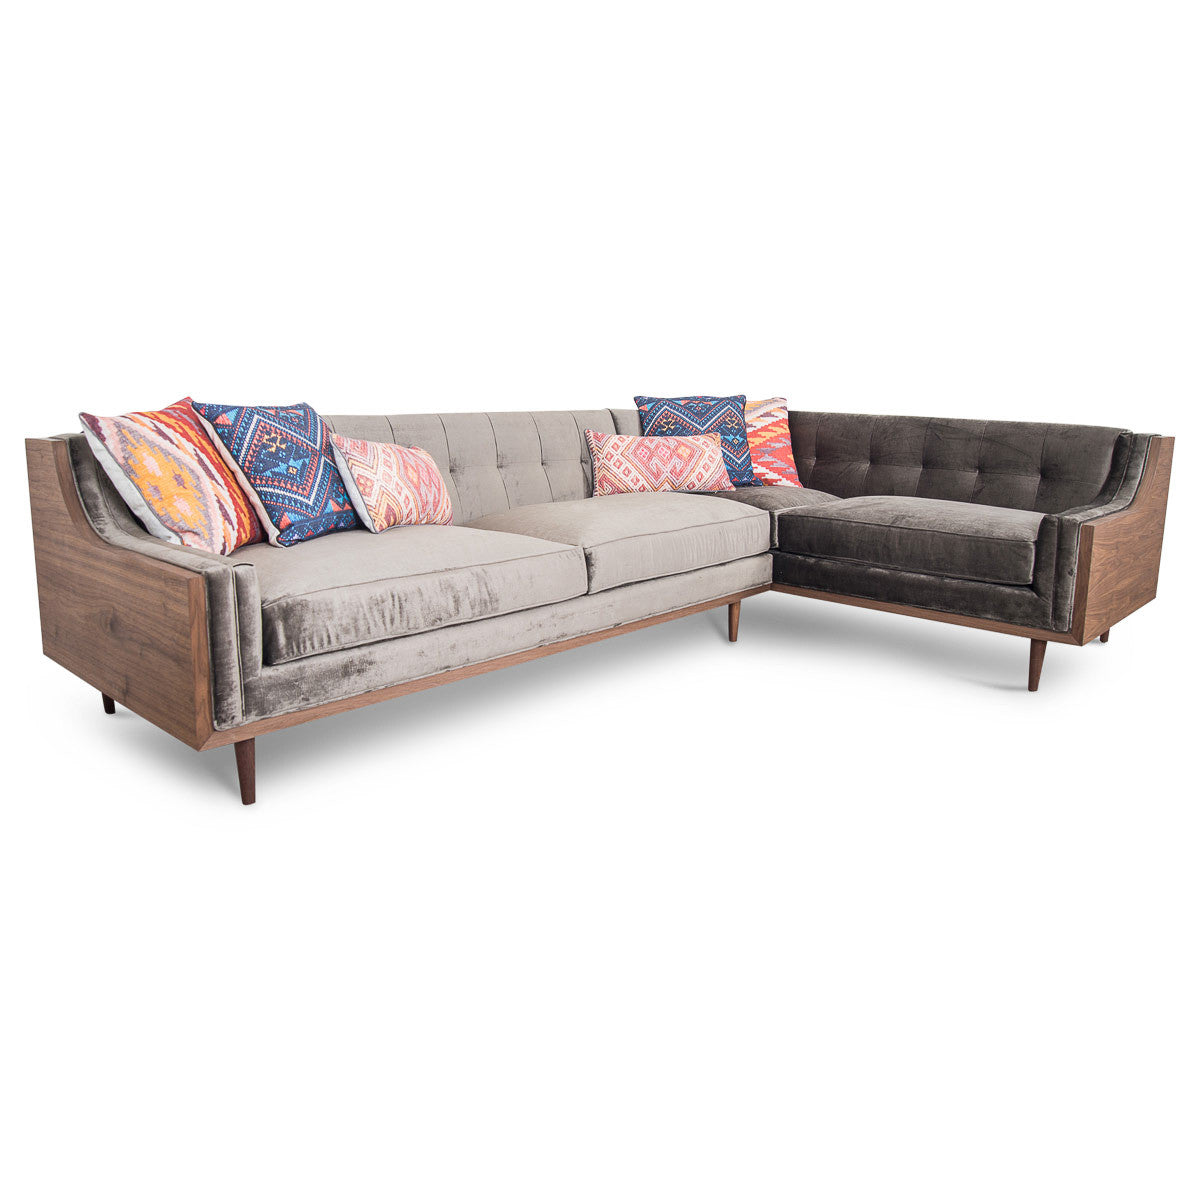 Lautner Sectional in Brussels Sky Grey Velvet - ModShop1.com